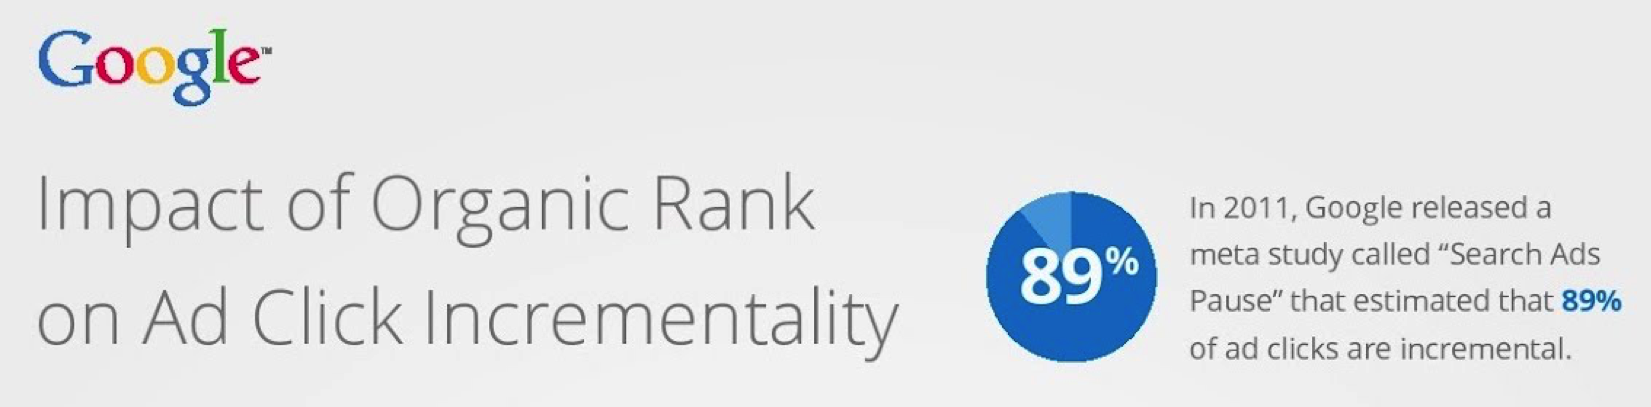 Google Chart: The Impact of Organic Rank on Ad Click Incrementality